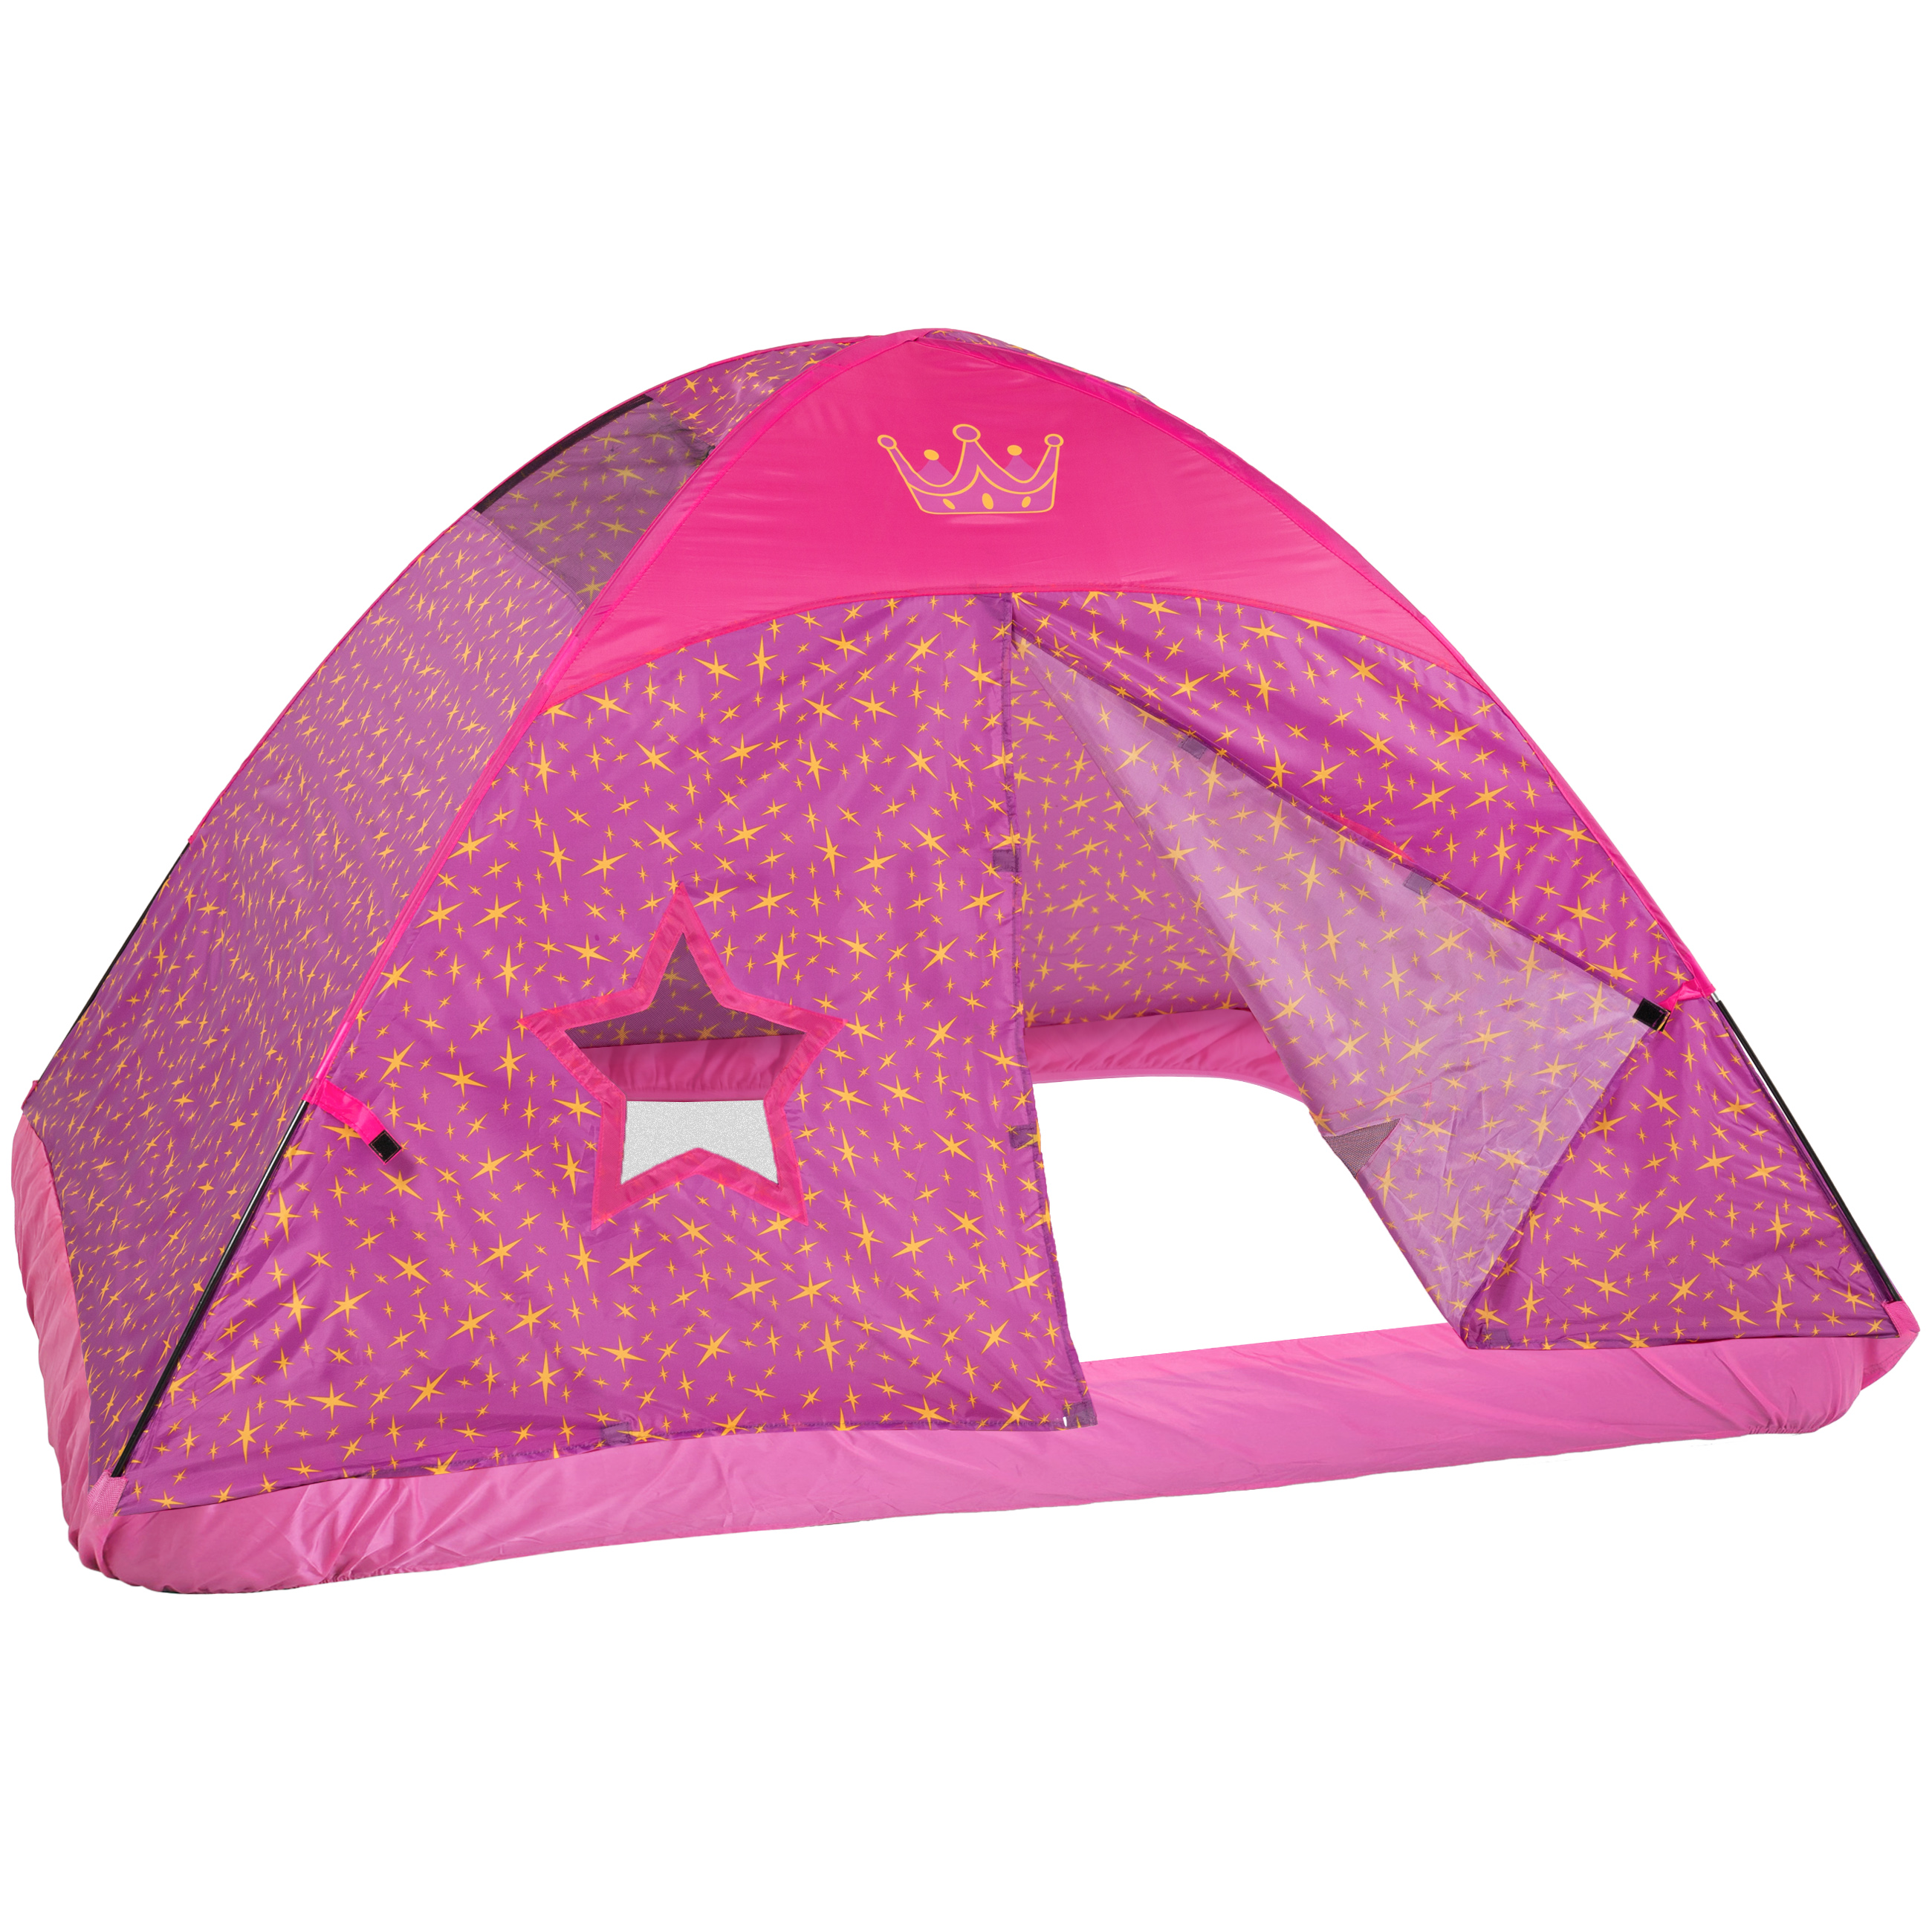 Best Choice Products BCP Pink Princess Full Size Bed Tent Kid's Fantasy Easy Set Up Play House